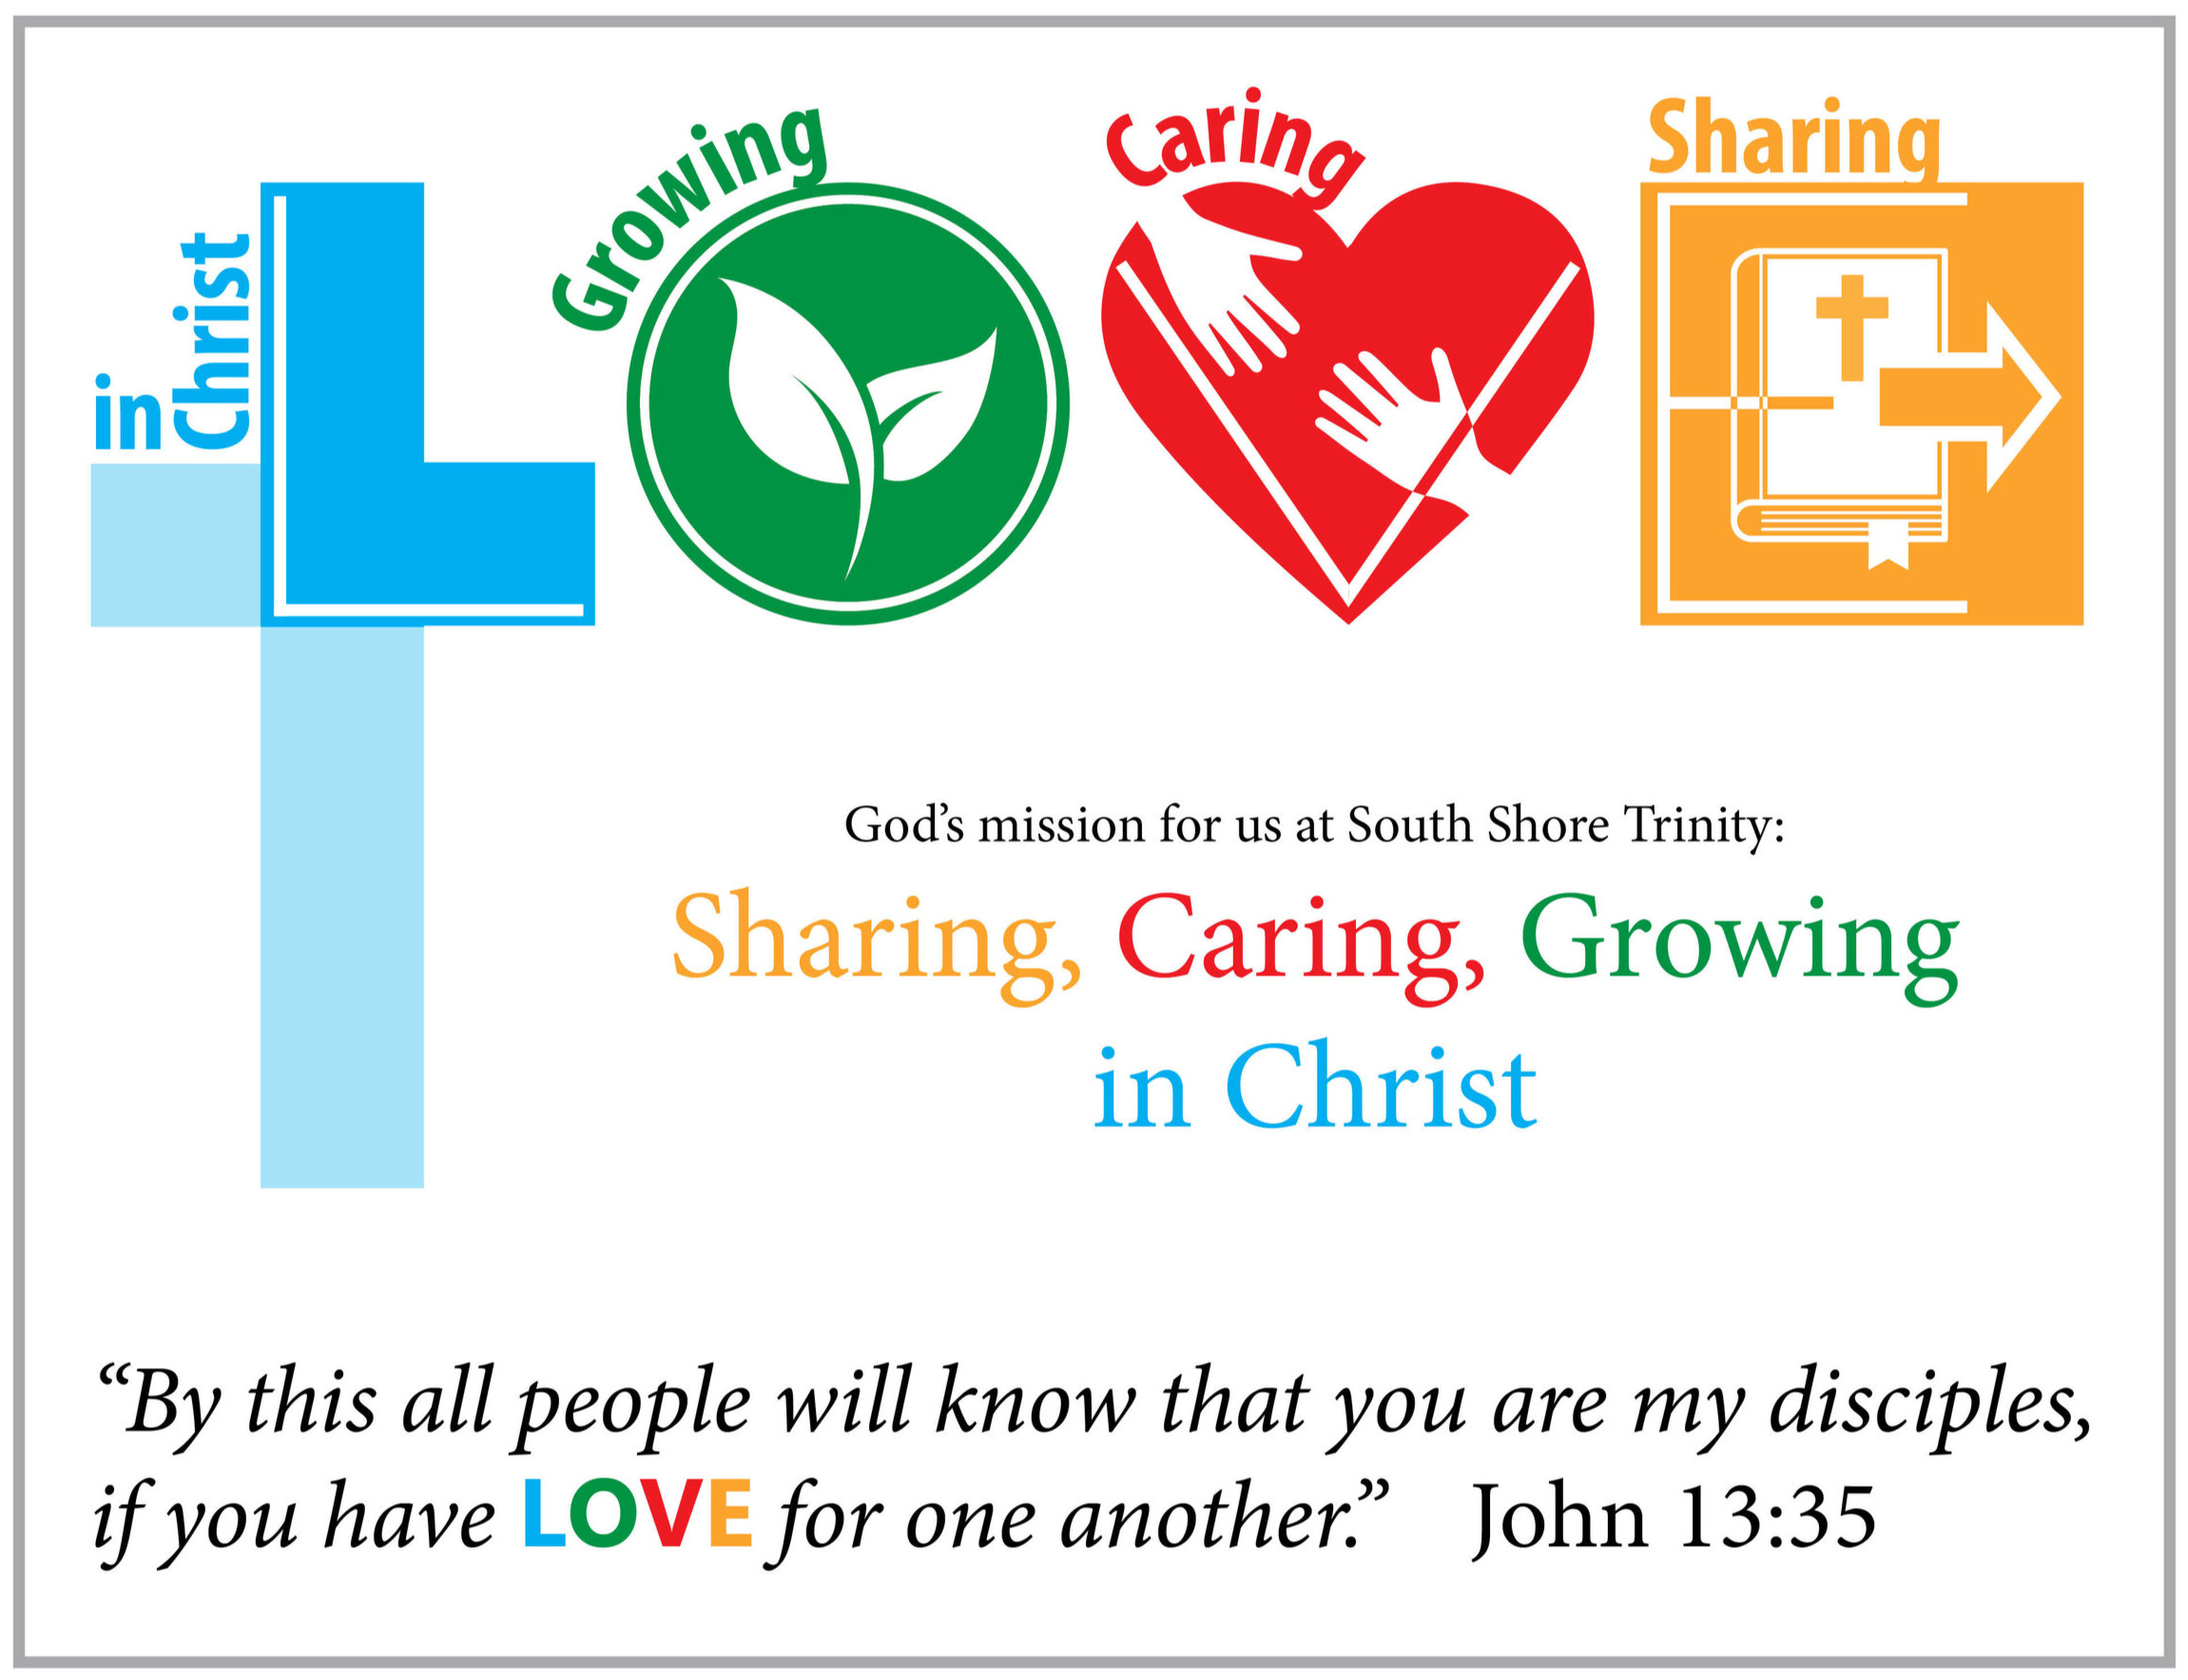 Click on the image above to learn more about who South Shore Trinity is, and what we feel God expects of us.